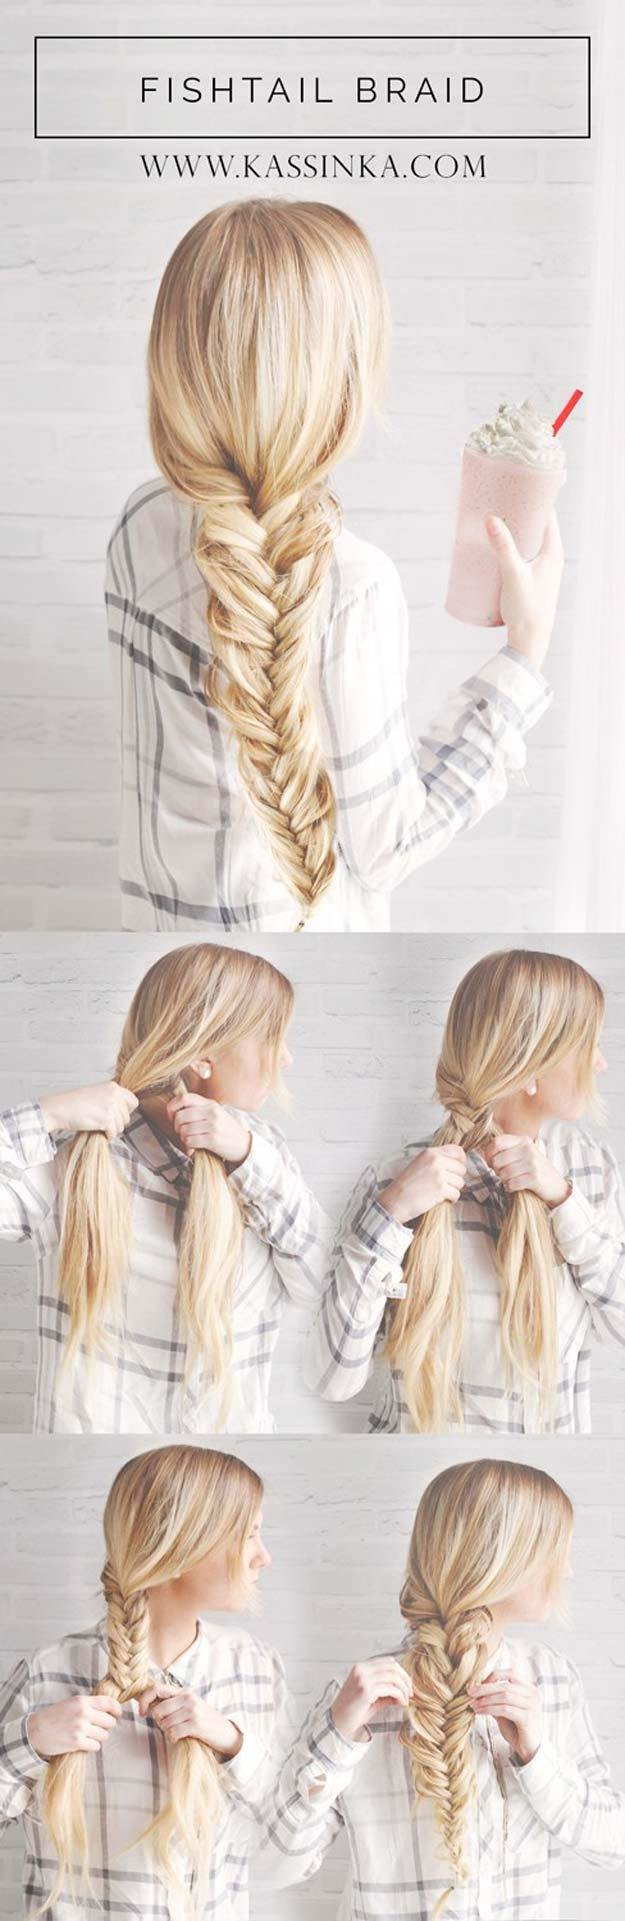 The Best 40 Of The Best Cute Hair Braiding Tutorials Diy Projects For Teens Pictures